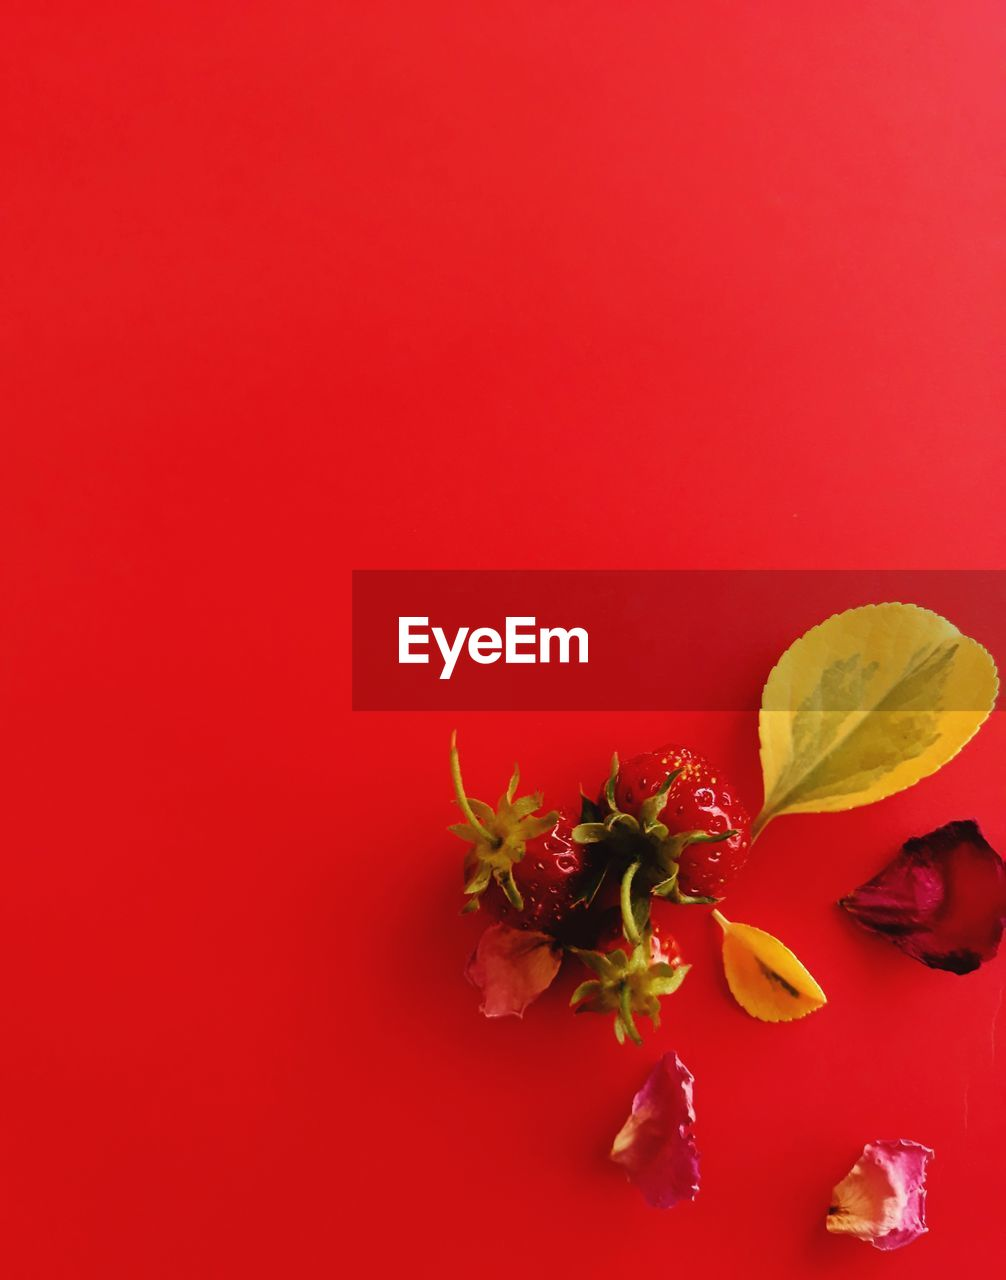 freshness, colored background, red, flower, flowering plant, indoors, beauty in nature, no people, close-up, fruit, copy space, studio shot, still life, food, vulnerability, food and drink, red background, petal, fragility, plant, flower head